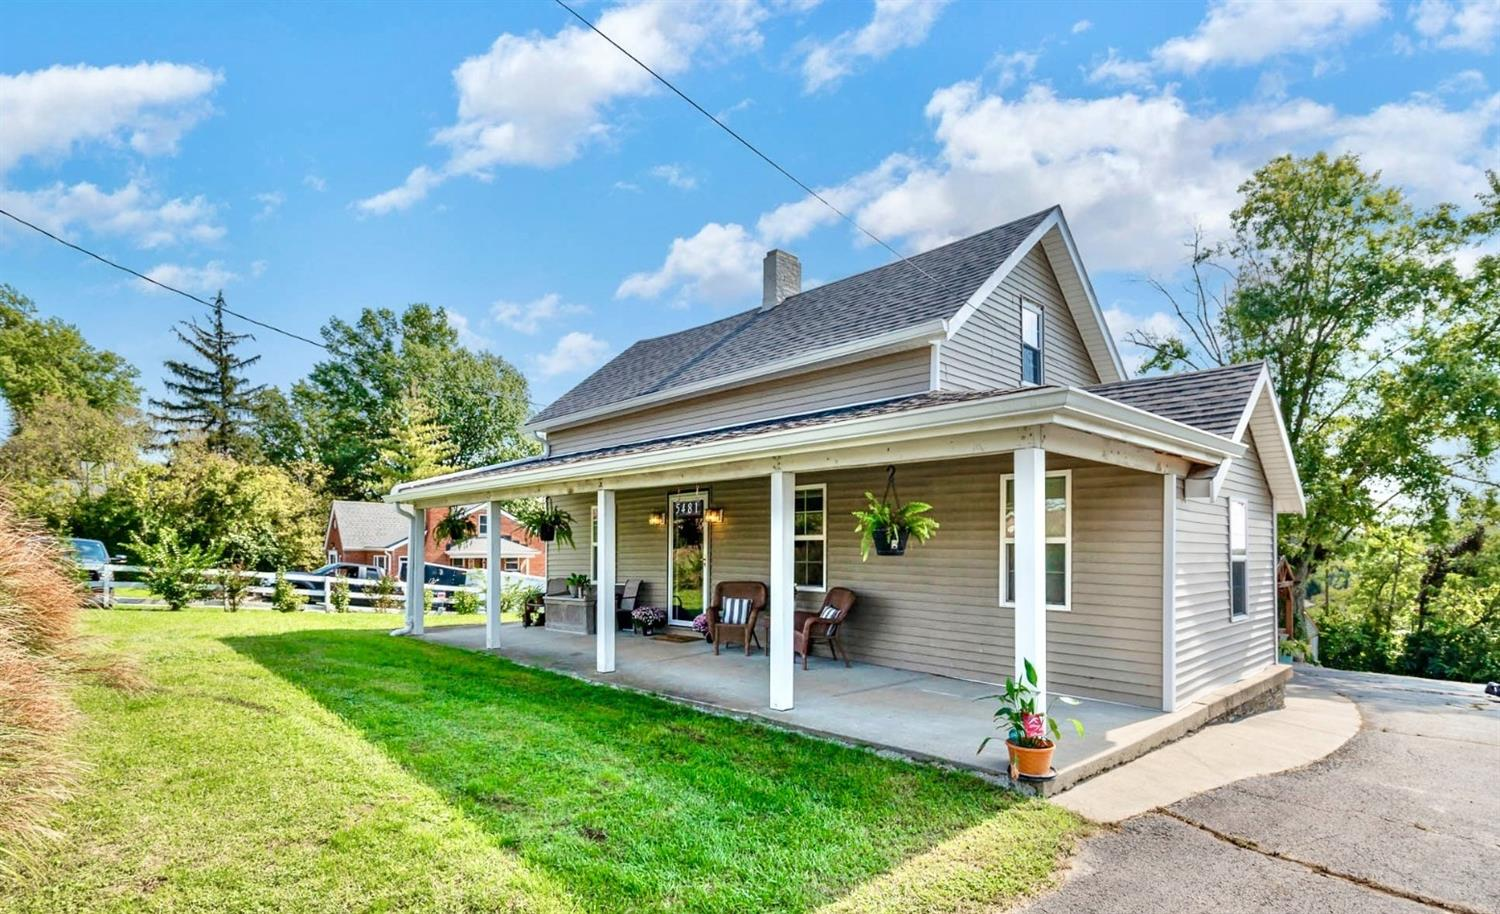 5481 West Fork Road, Green Twp, Ohio 45247, 3 Bedrooms Bedrooms, 6 Rooms Rooms,2 BathroomsBathrooms,Single Family Residence,For Sale,West Fork,1718947